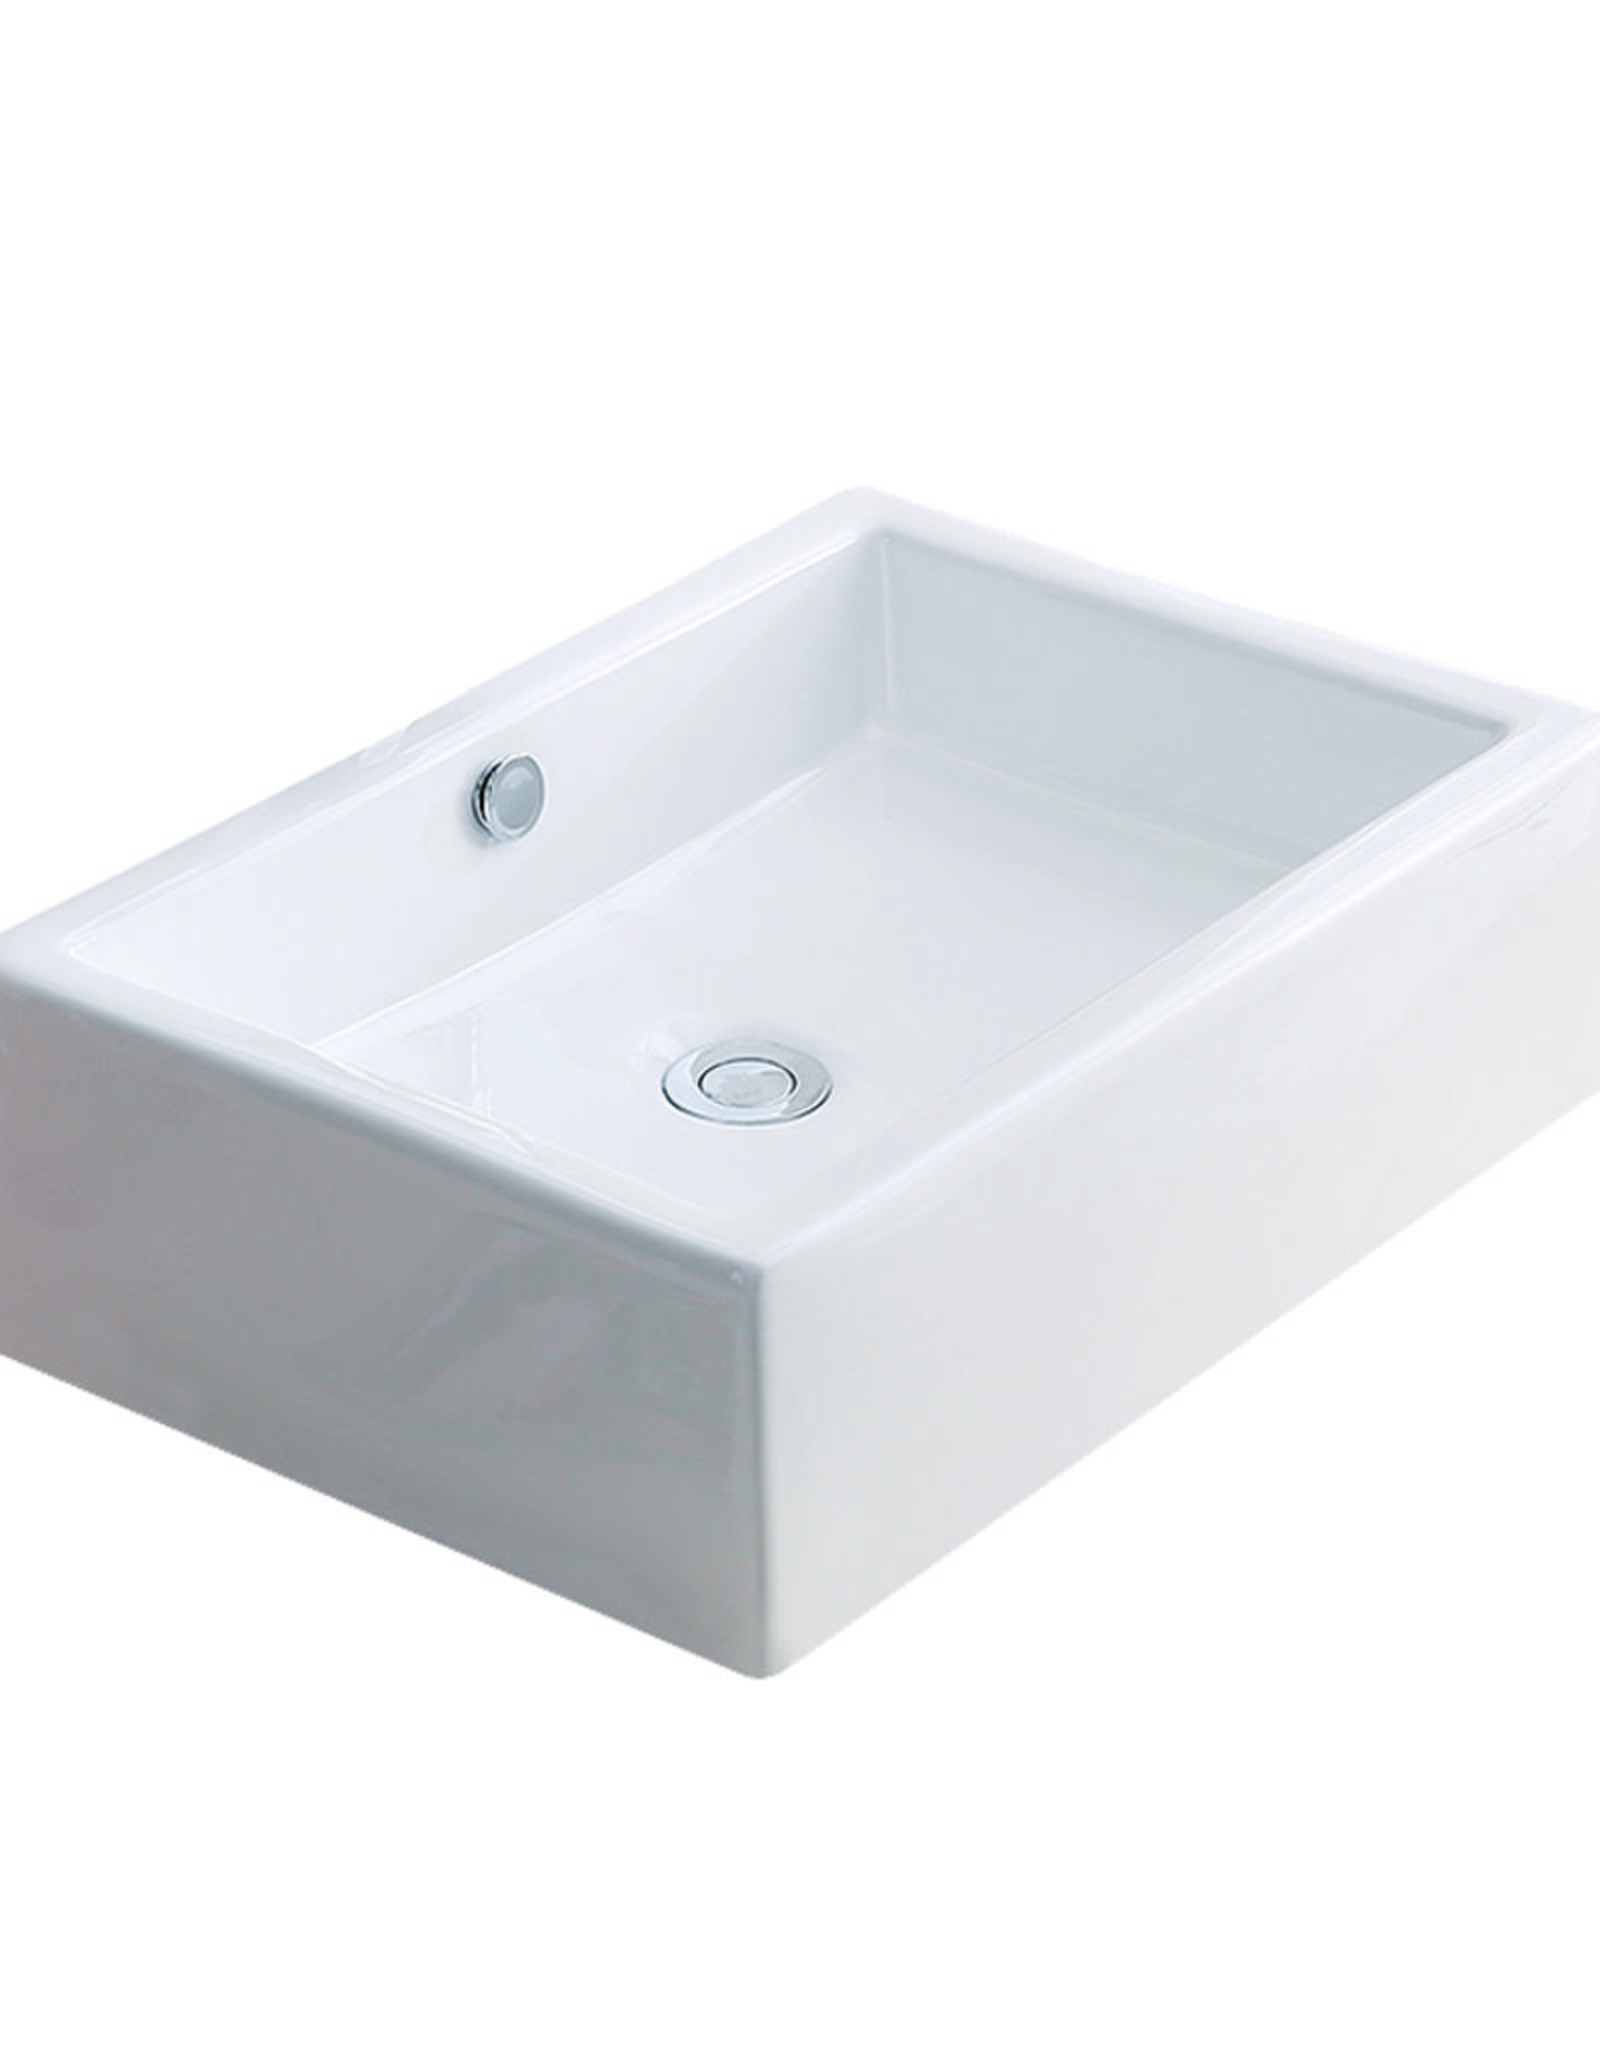 Vogt VOGT - KUFSTEIN VITREOUS CHINA VESSEL SINK